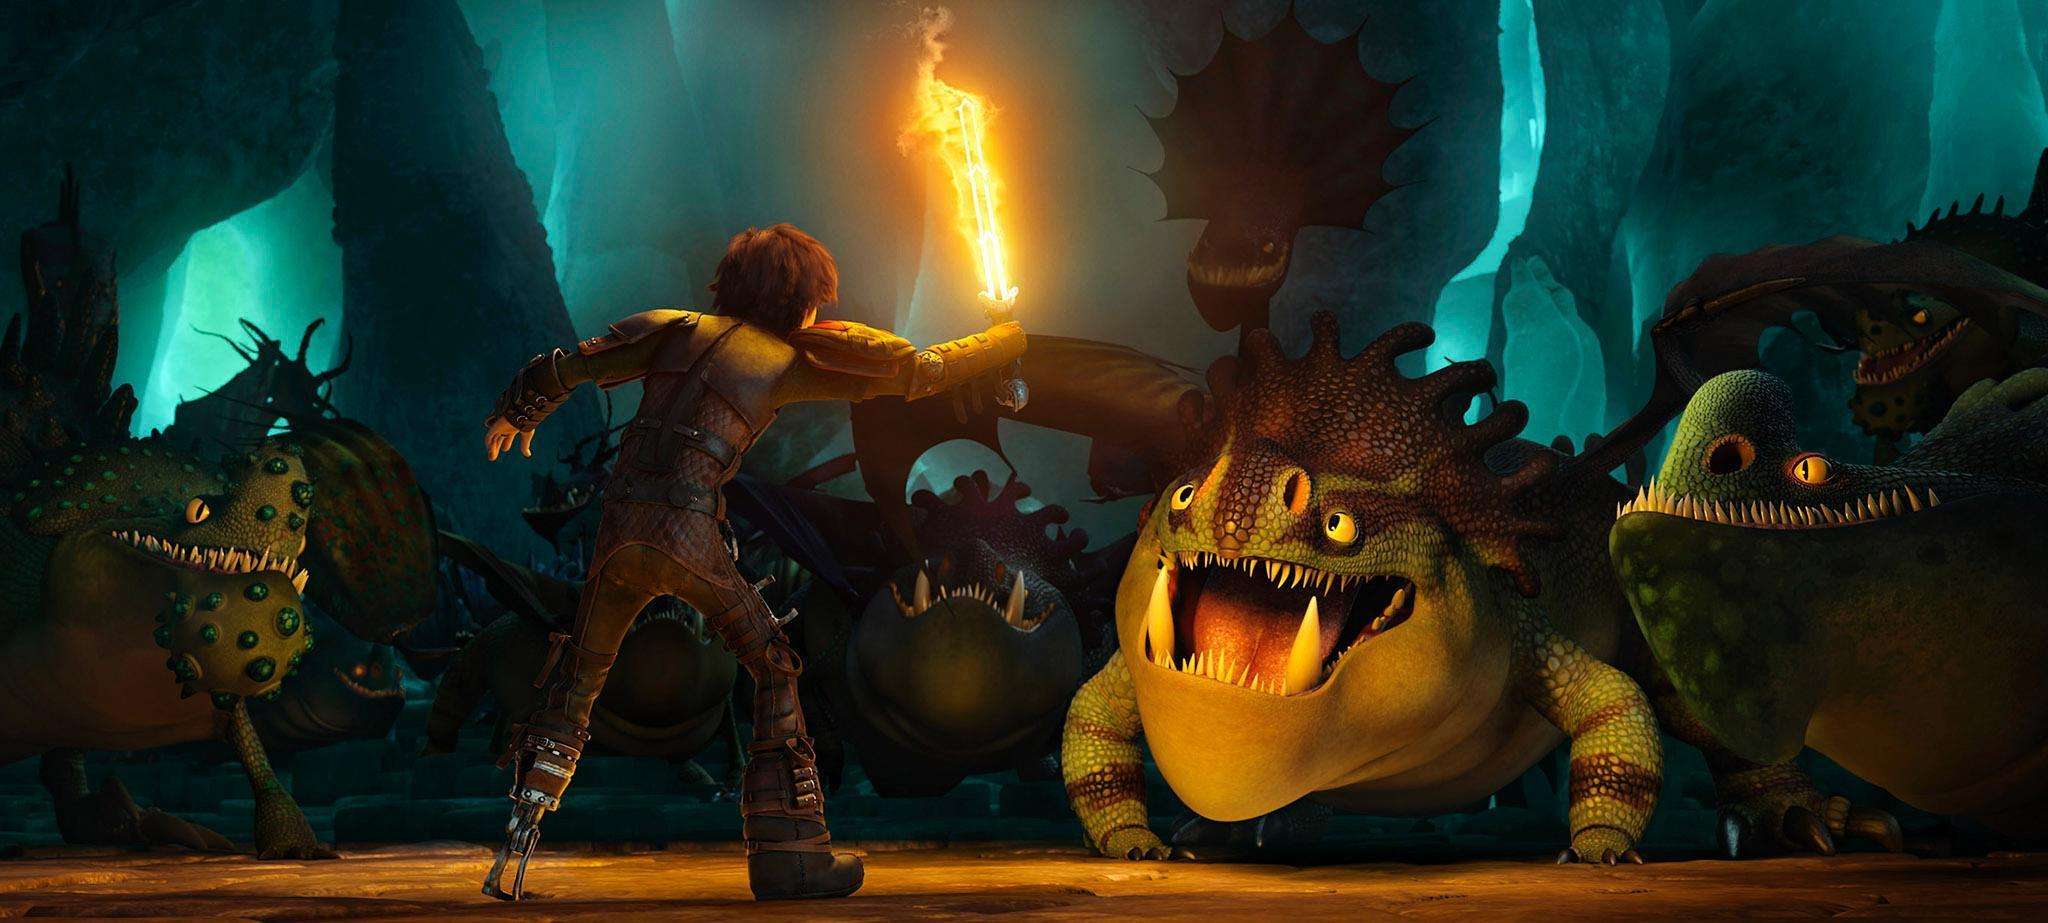 Hiccup's Diy Dragon Blade Explained In Exclusive Dvd Extra